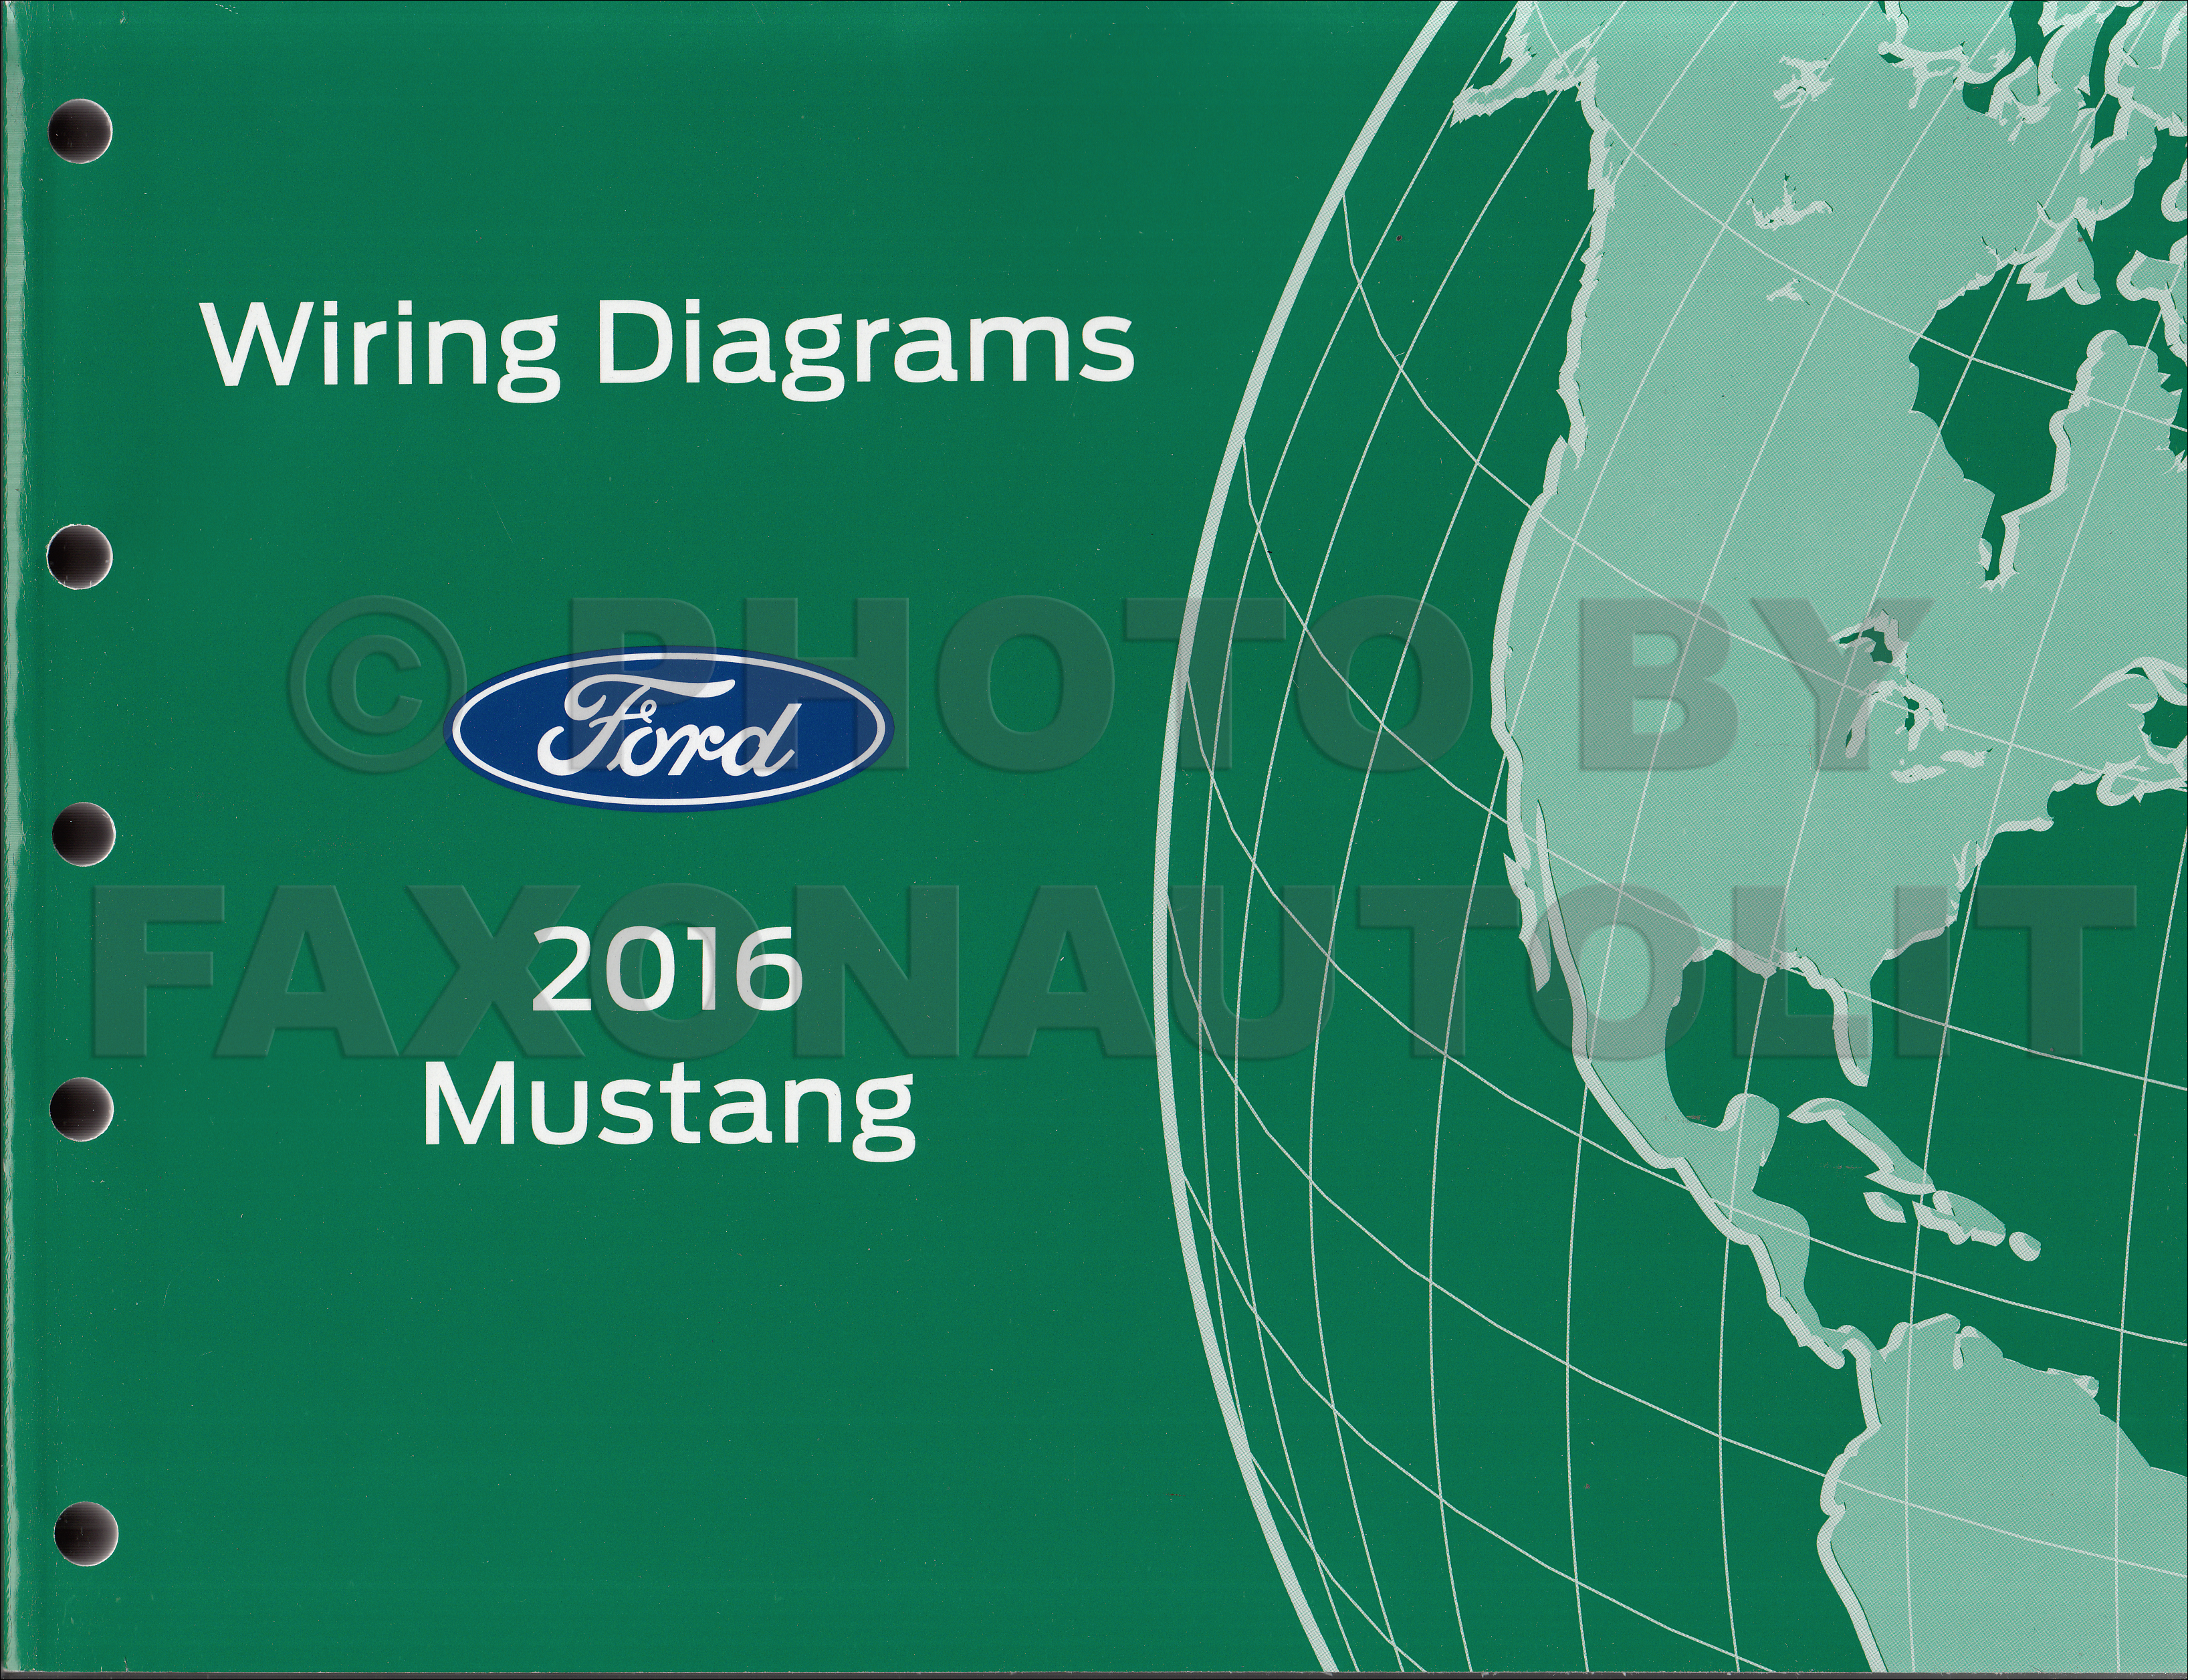 2016FordMustangOWD 2016 ford mustang wiring diagram manual original ford mustang wiring diagram at gsmx.co